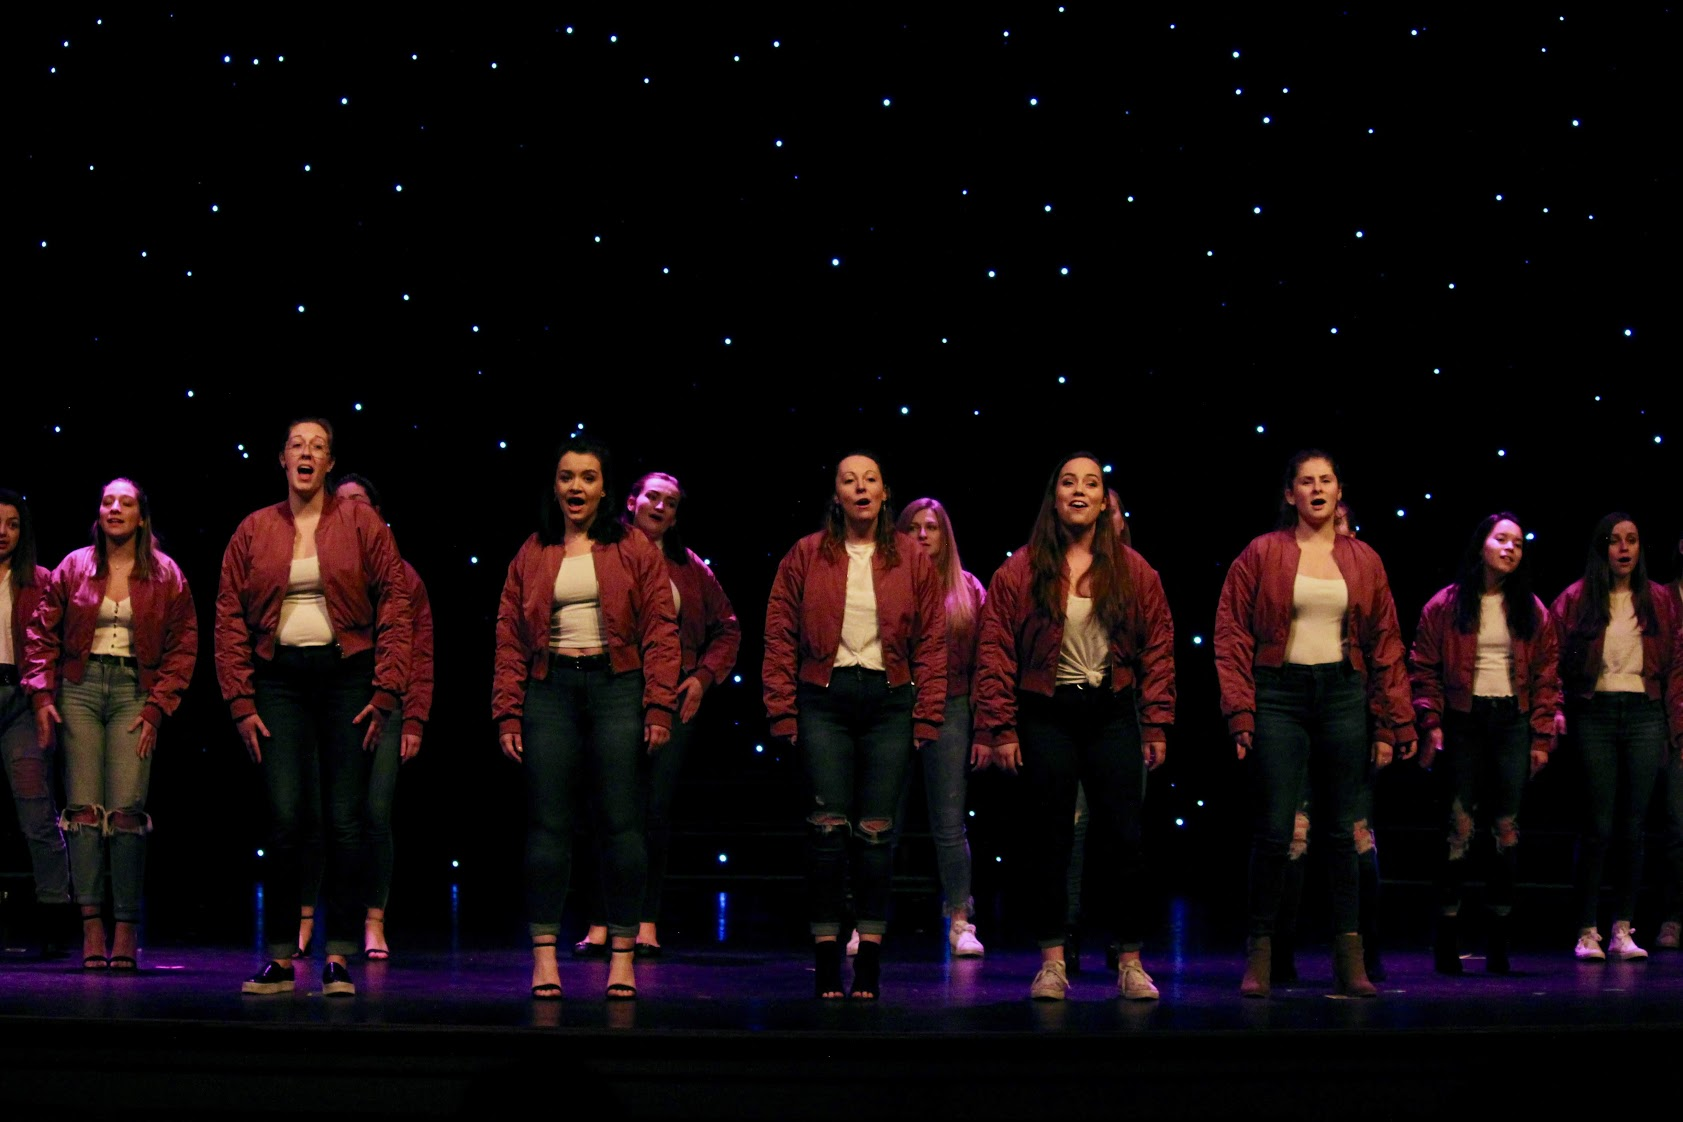 A cappella group The Lovely Sirens performing at this year's Love in the Afternoon benefit concert. Image courtesy of Emily Jones, '19